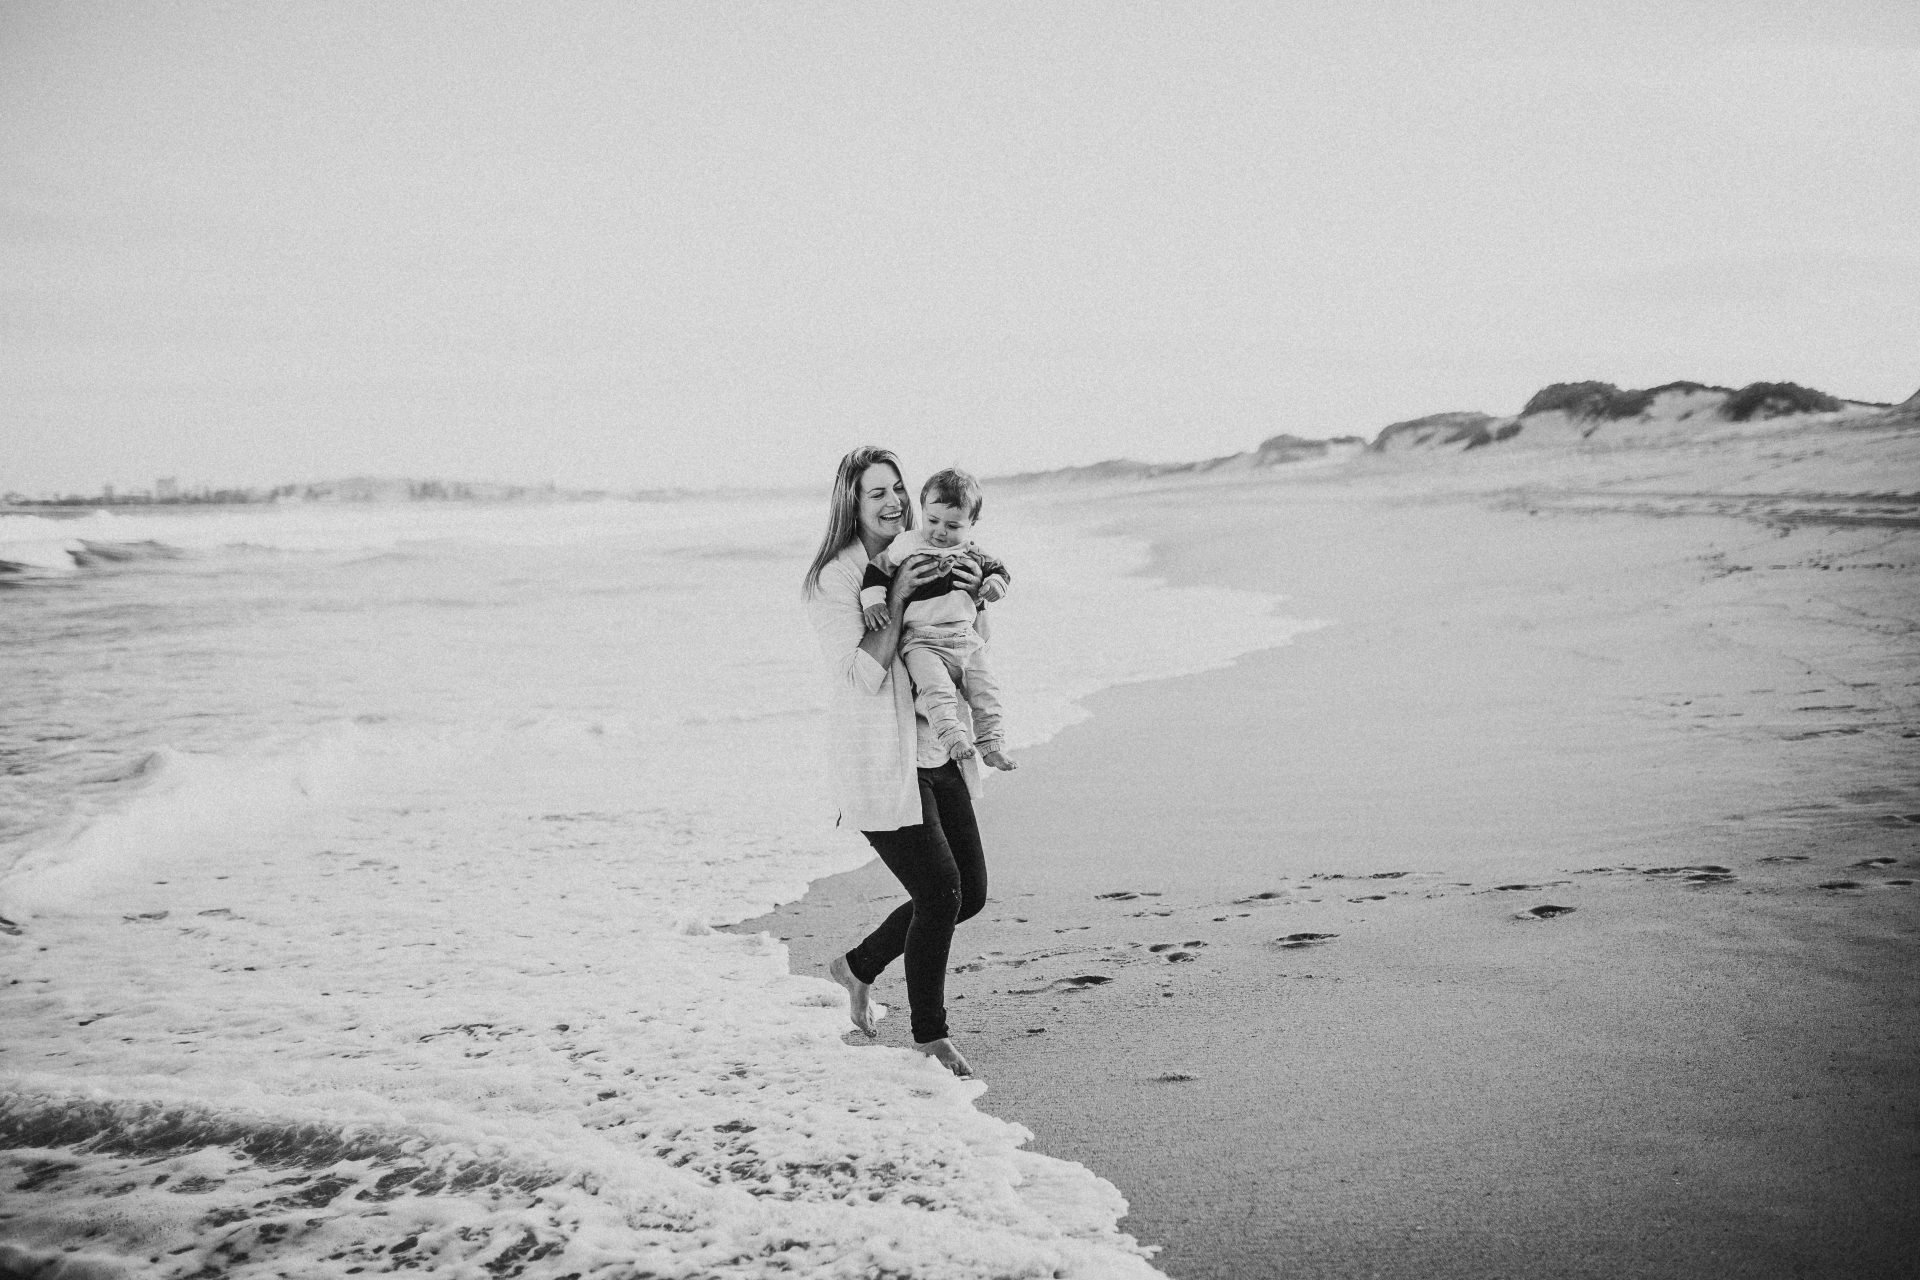 Black and white image of a woman with her toddler son on the beach, at the edge of the water